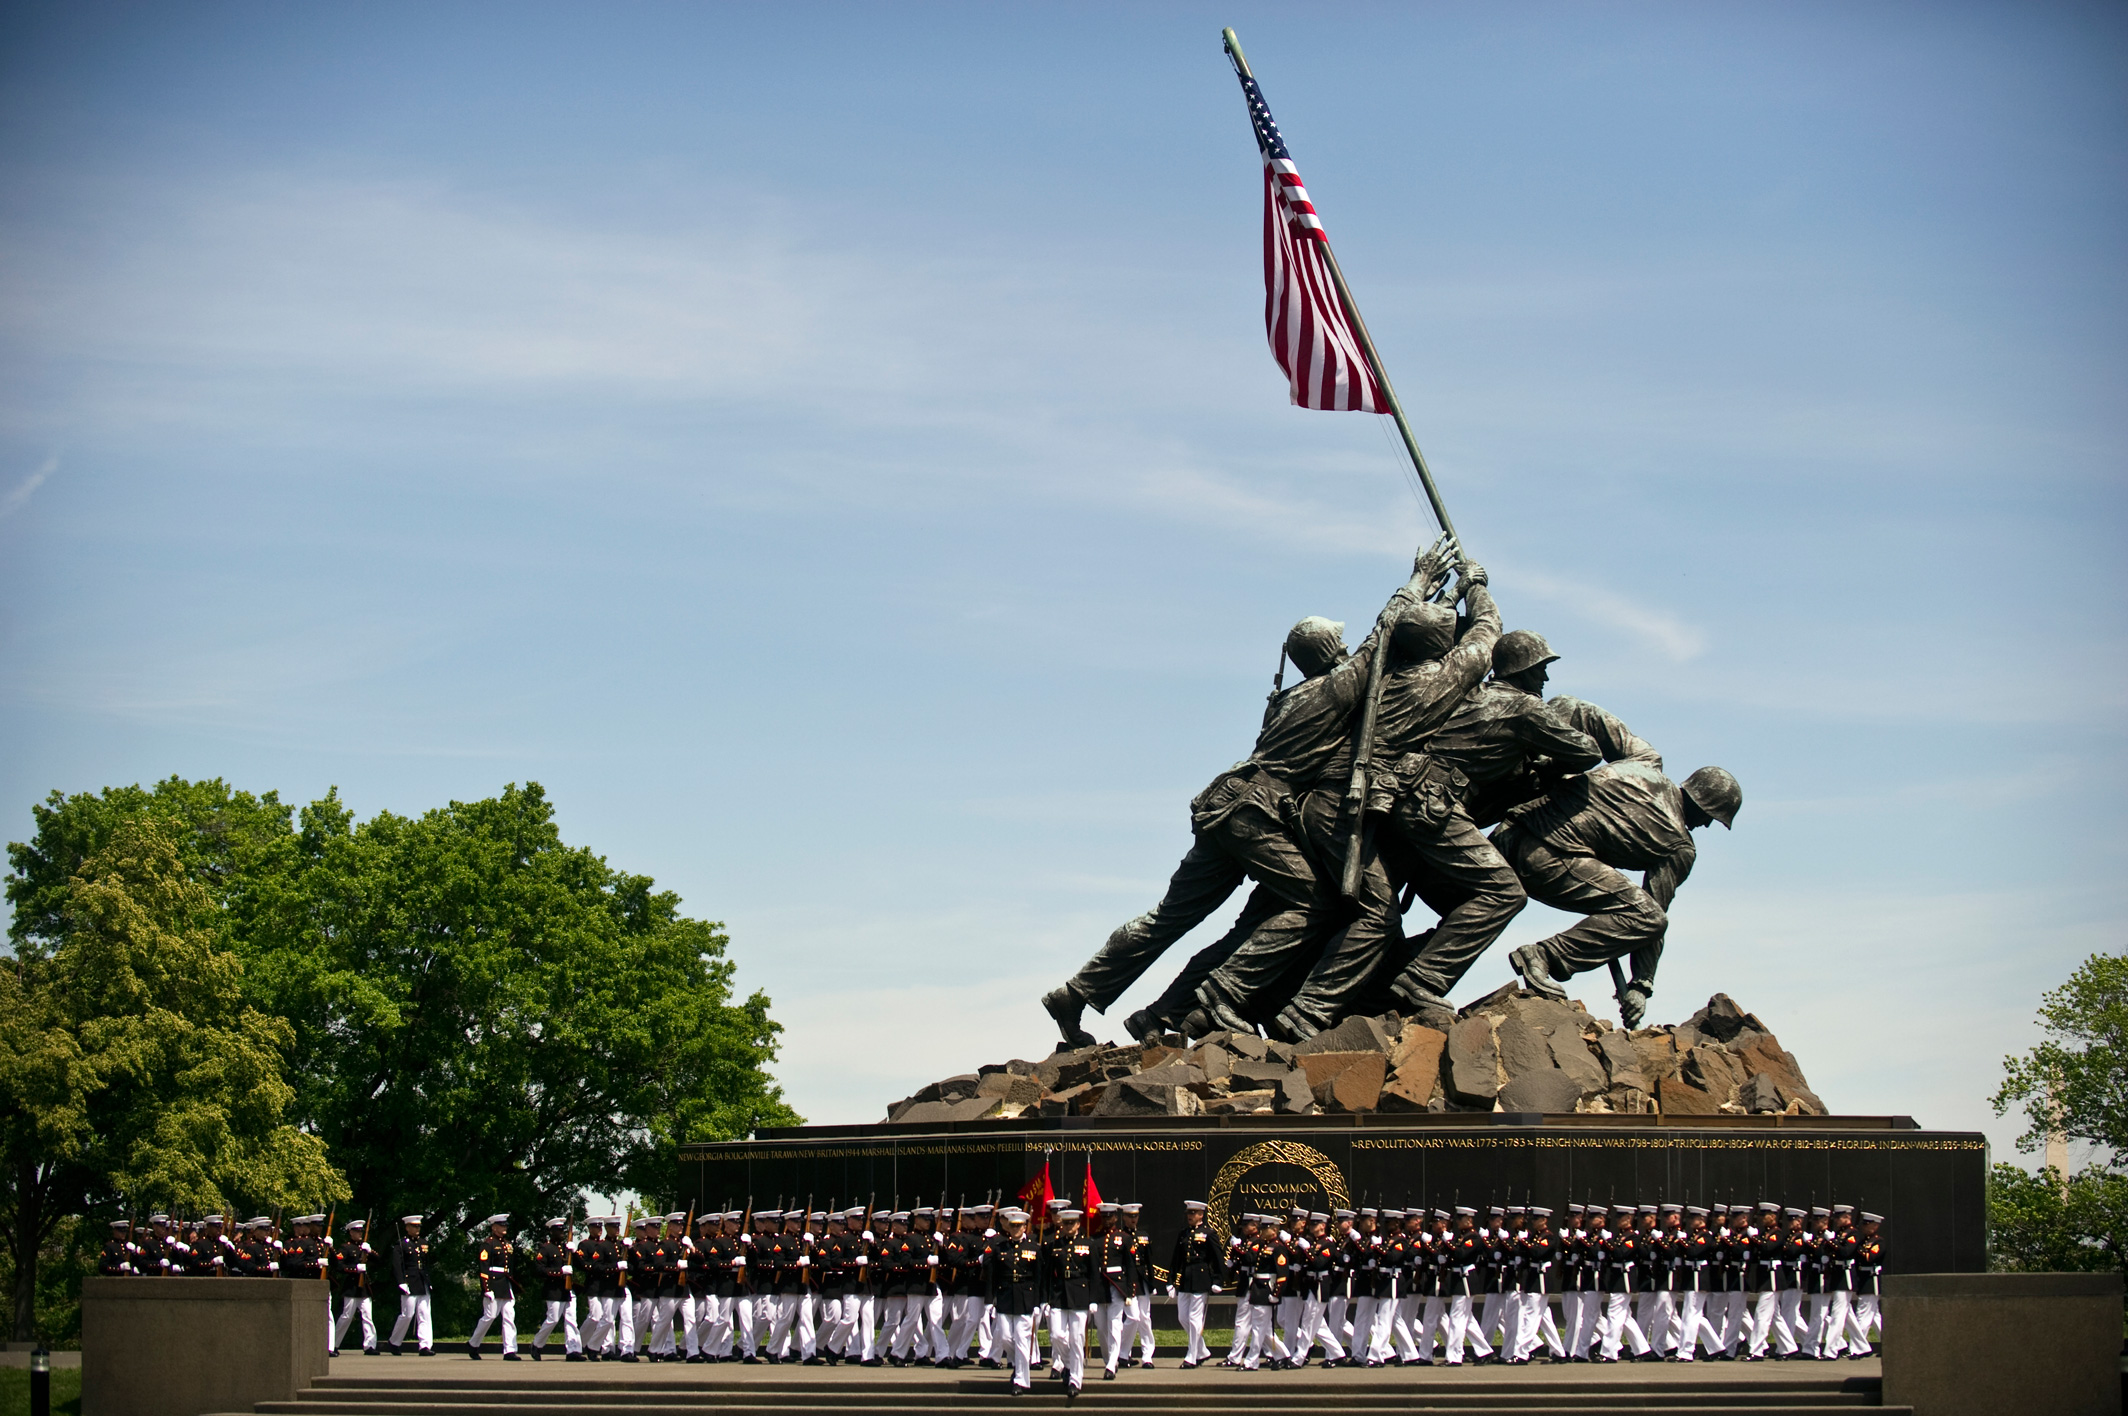 US_Navy_110510-N-UH963-066_Marines_march_past_the_Marine_Corps_War_Memorial_during_a_Navy_Cross_medal_award_ceremony_honoring_Gunnery_Sgt_edit